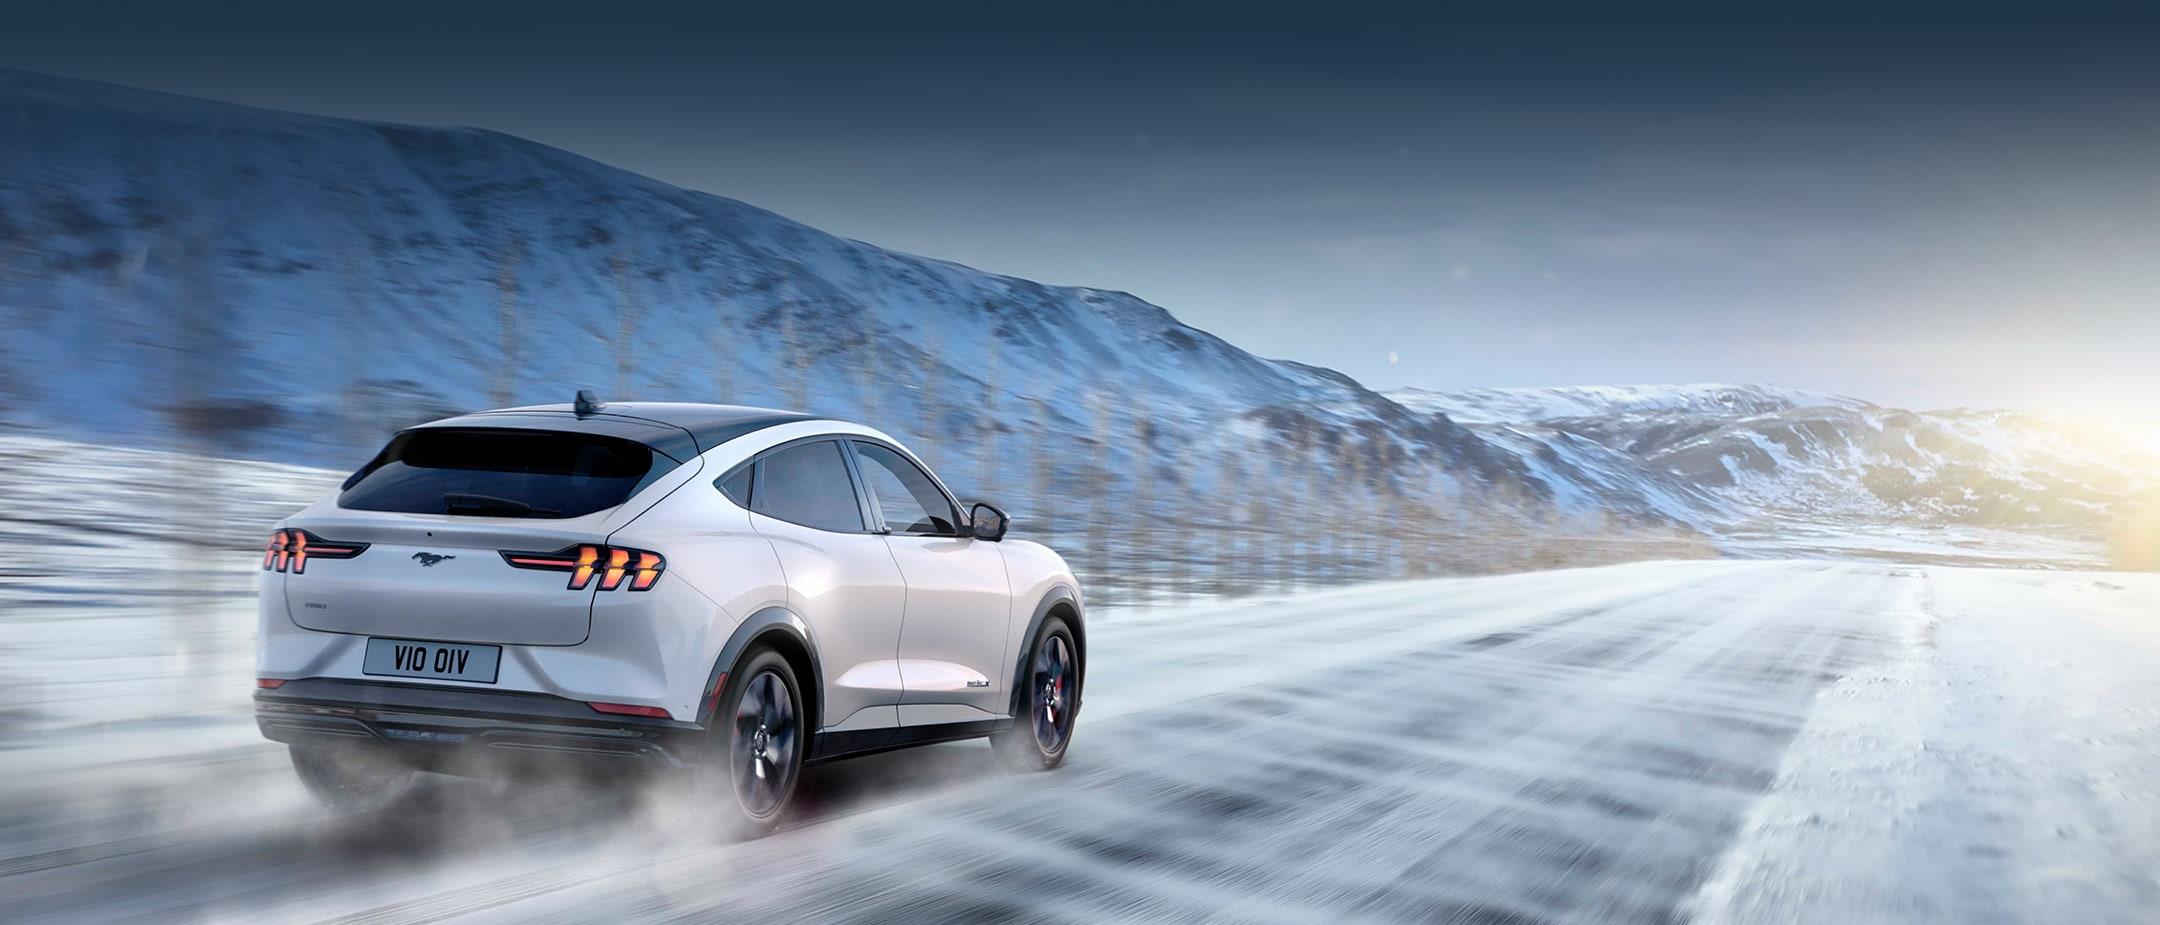 All-New Ford Mustang Mach-E in motion driving on snowy road surrounded by mountains